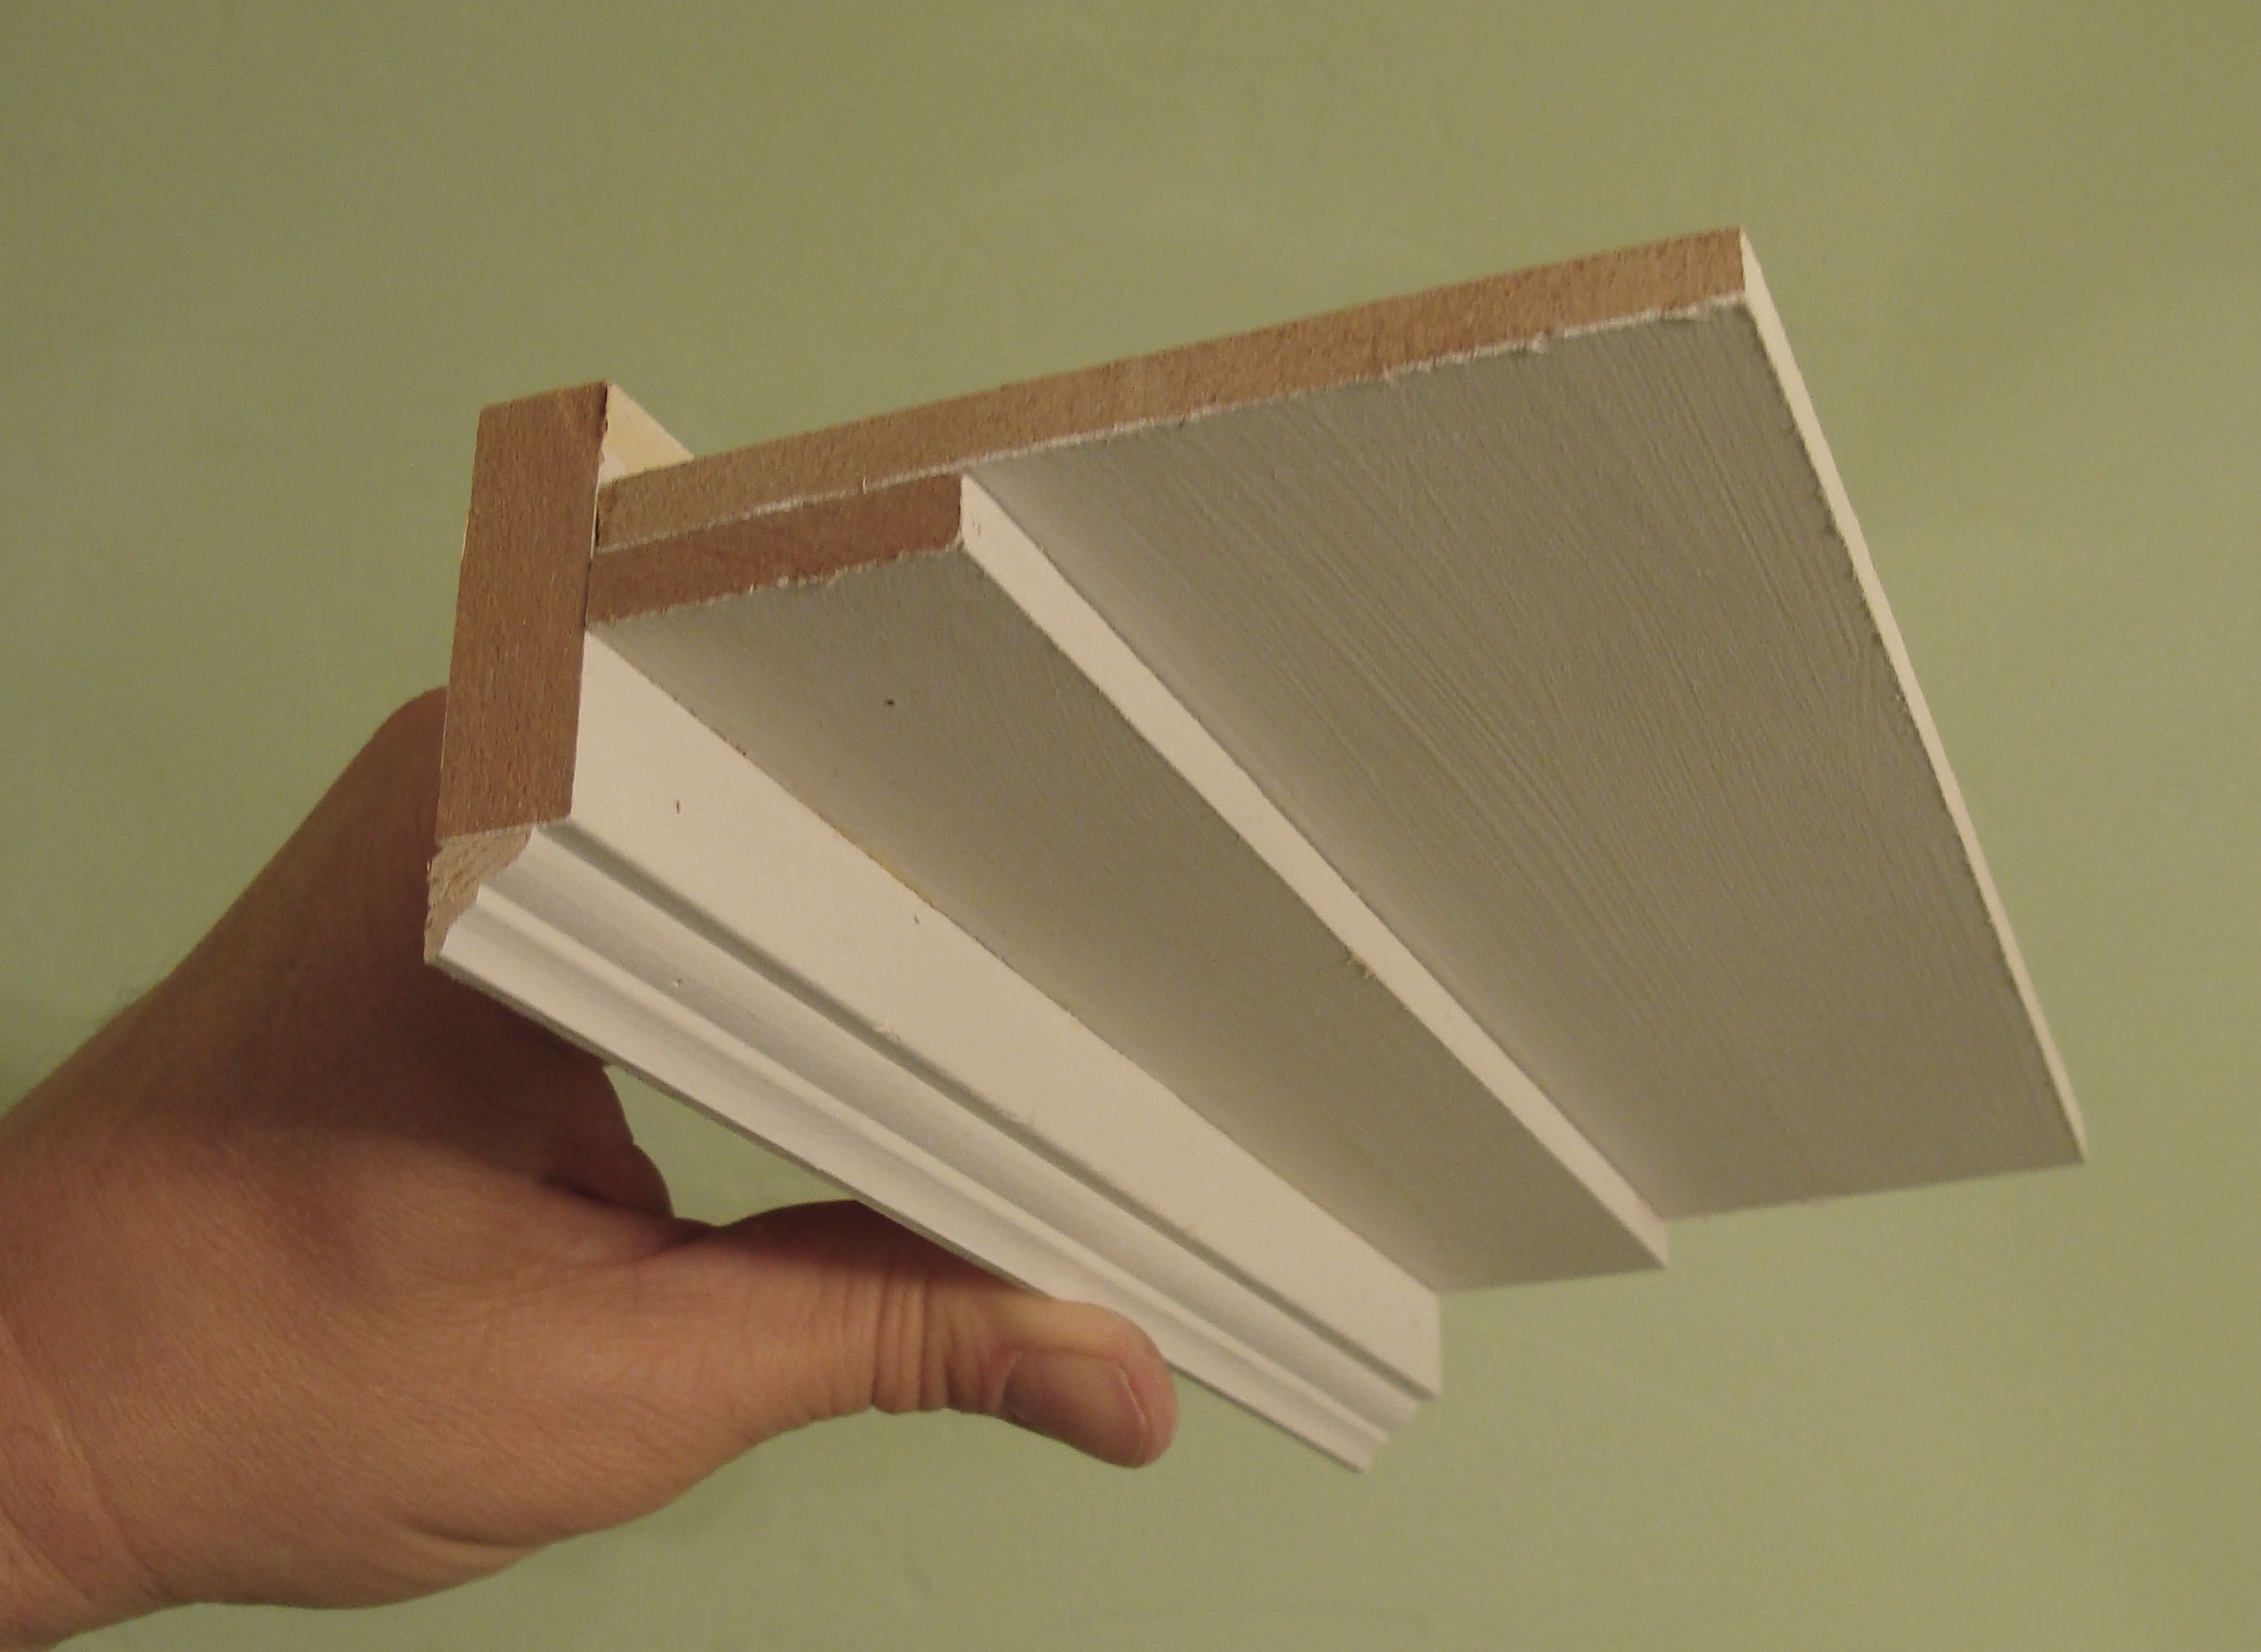 Flat crown molding pic only suttle dr pinterest molduras flat crown molding pic only solutioingenieria Choice Image